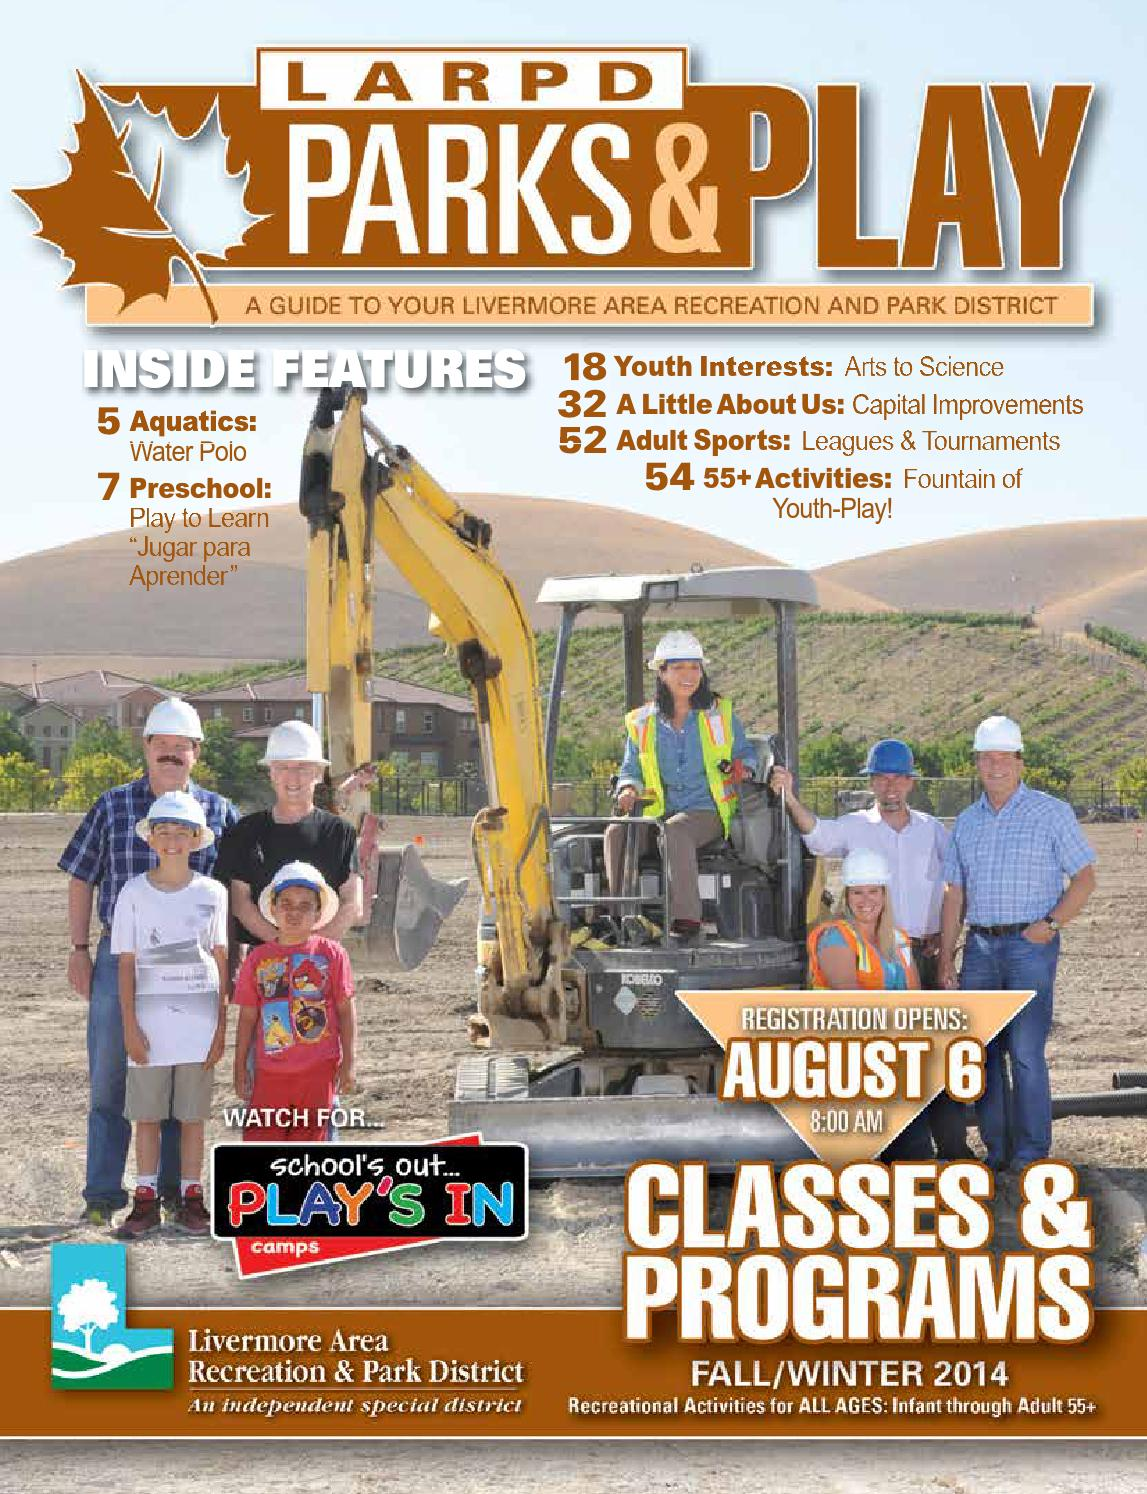 Parks & Play - Fall Winter 2014 Livermore Area Recreation & Park District